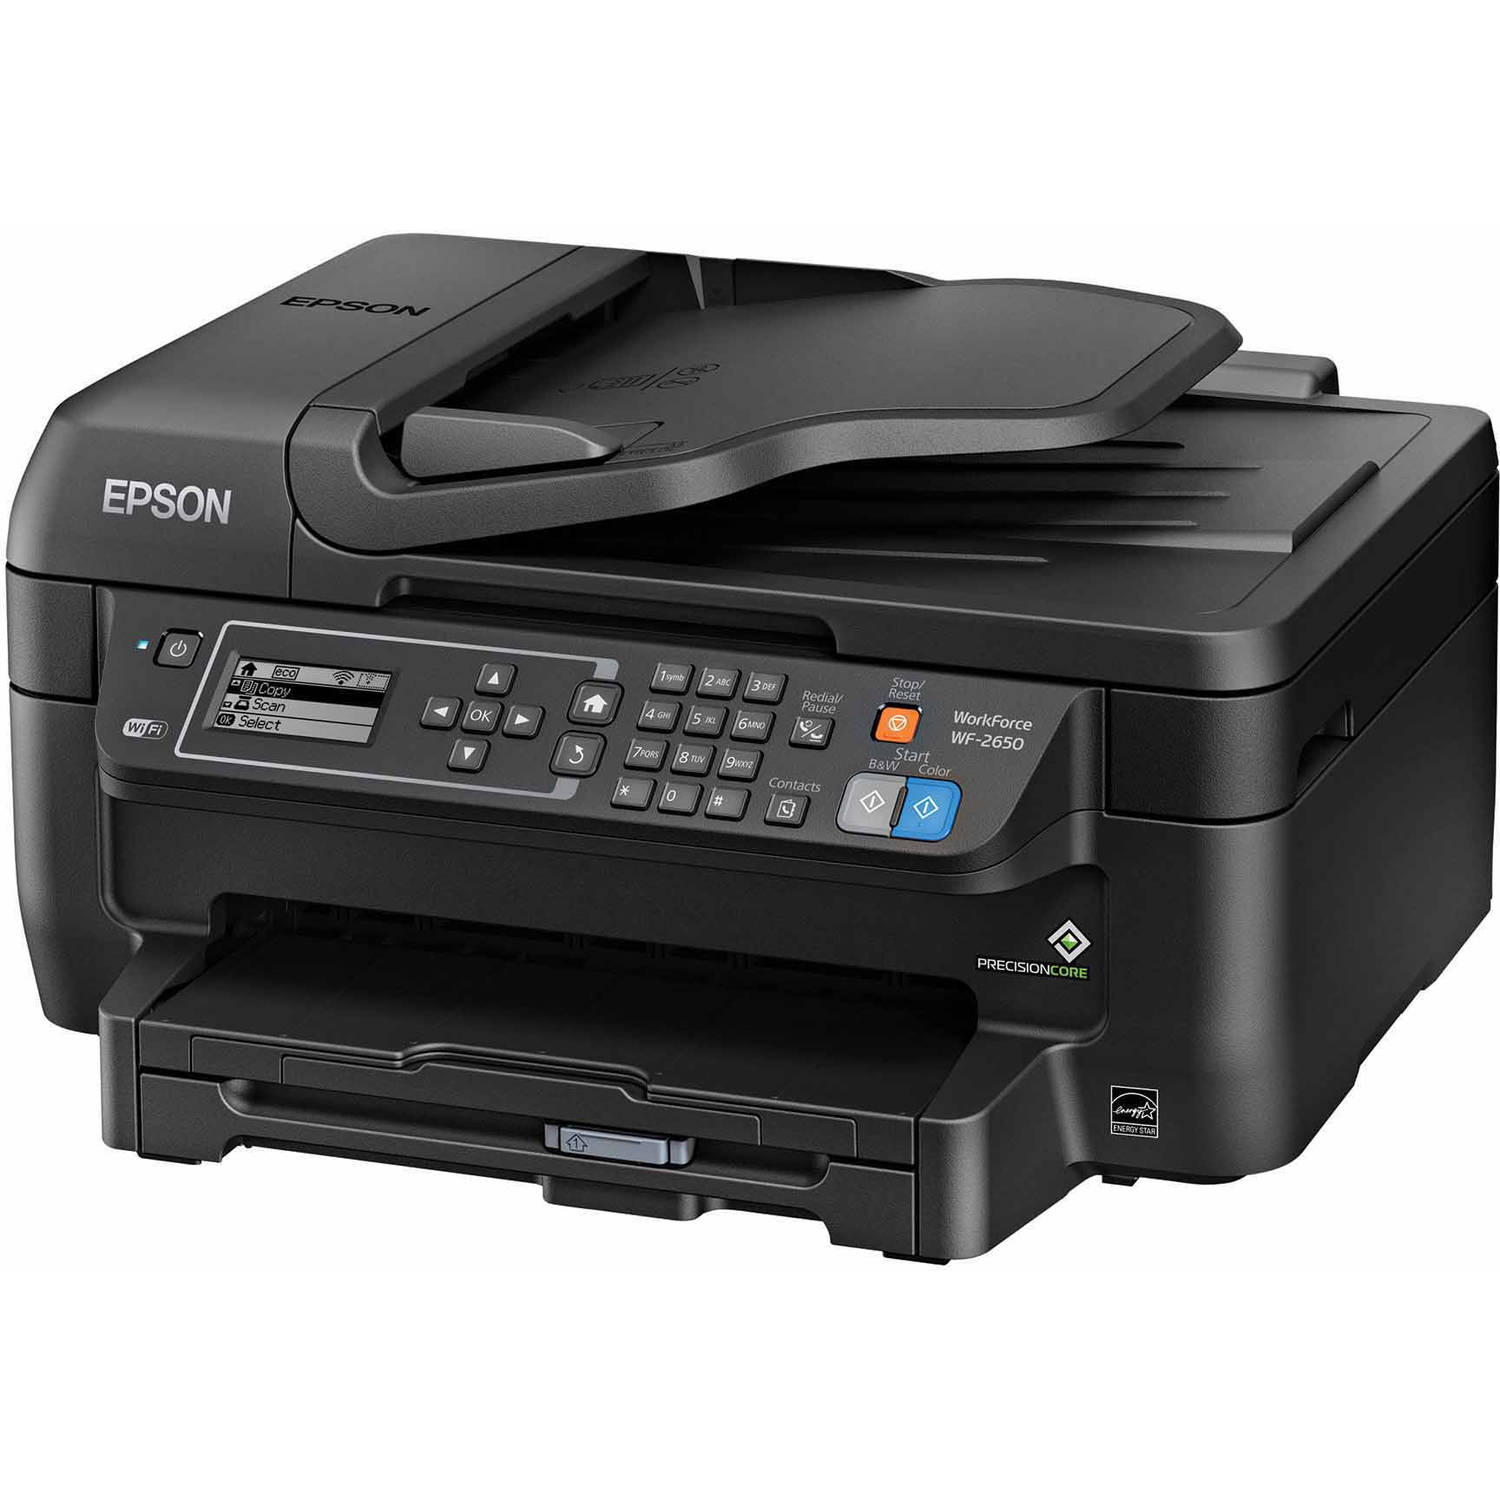 Epson WorkForce WF-2650 All-In-One Printer/Copier/Scanner/Fax Machine